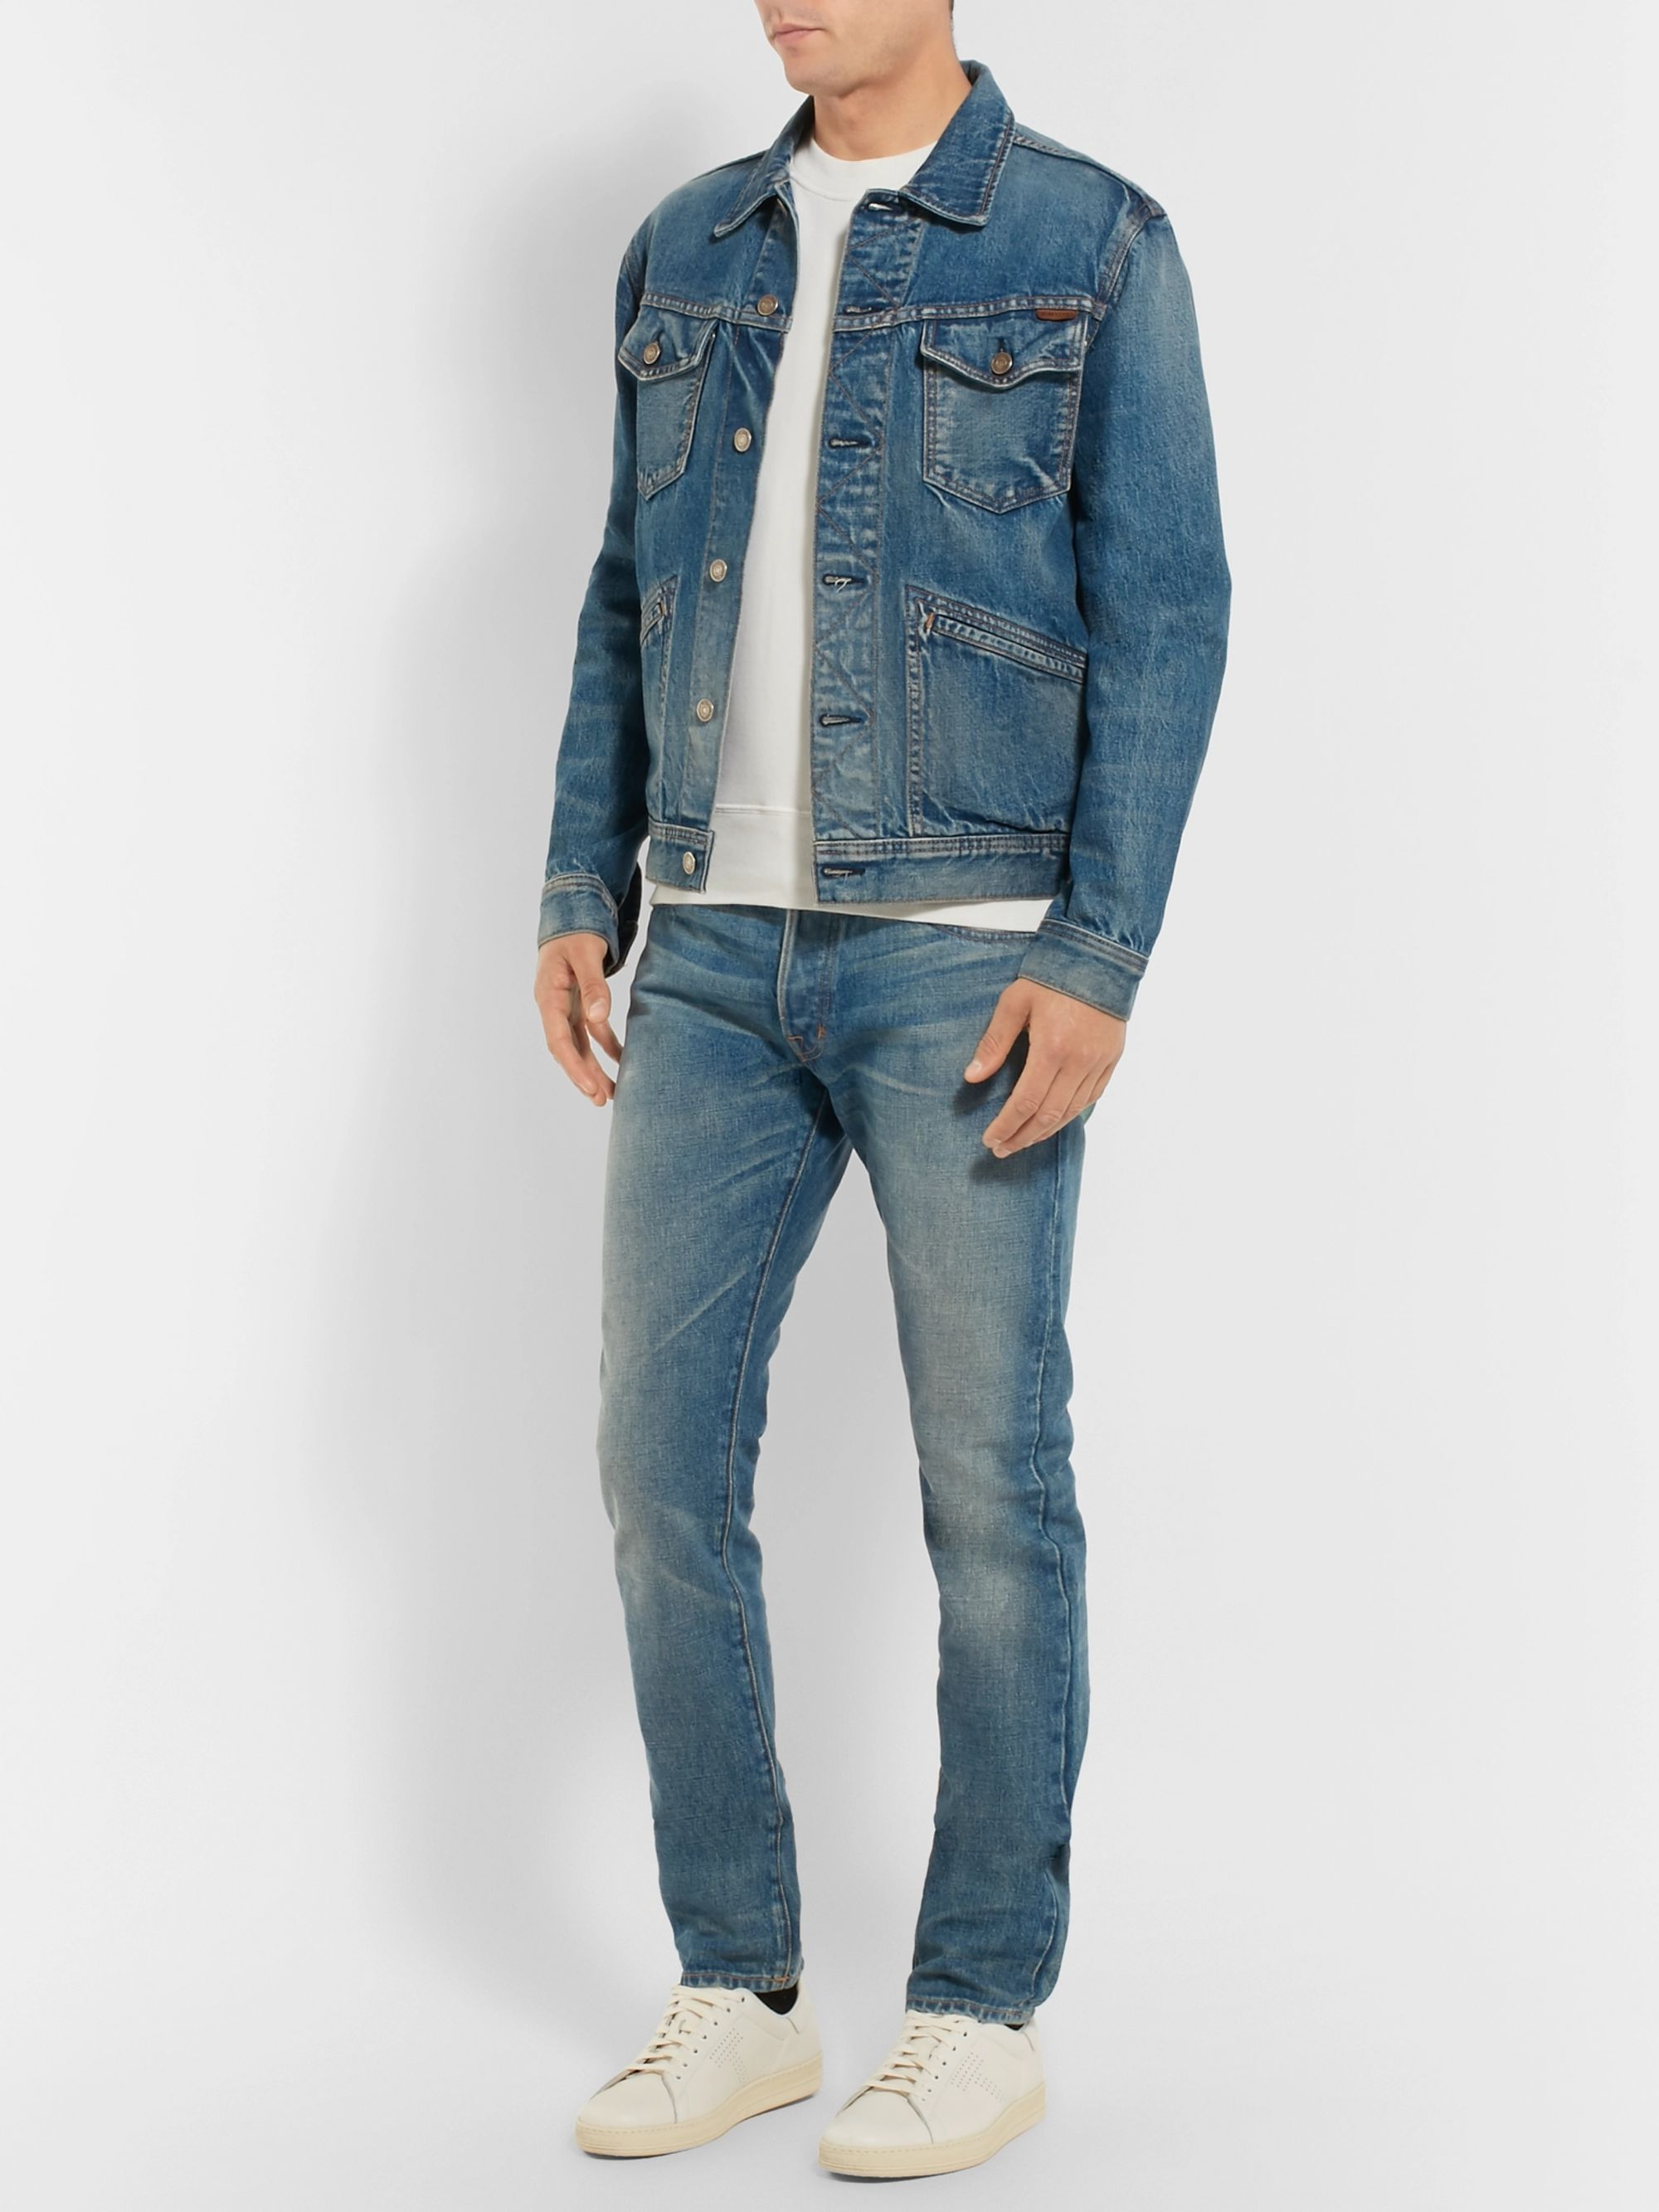 TOM FORD Slim-Fit Washed Selvedge Denim Jeans